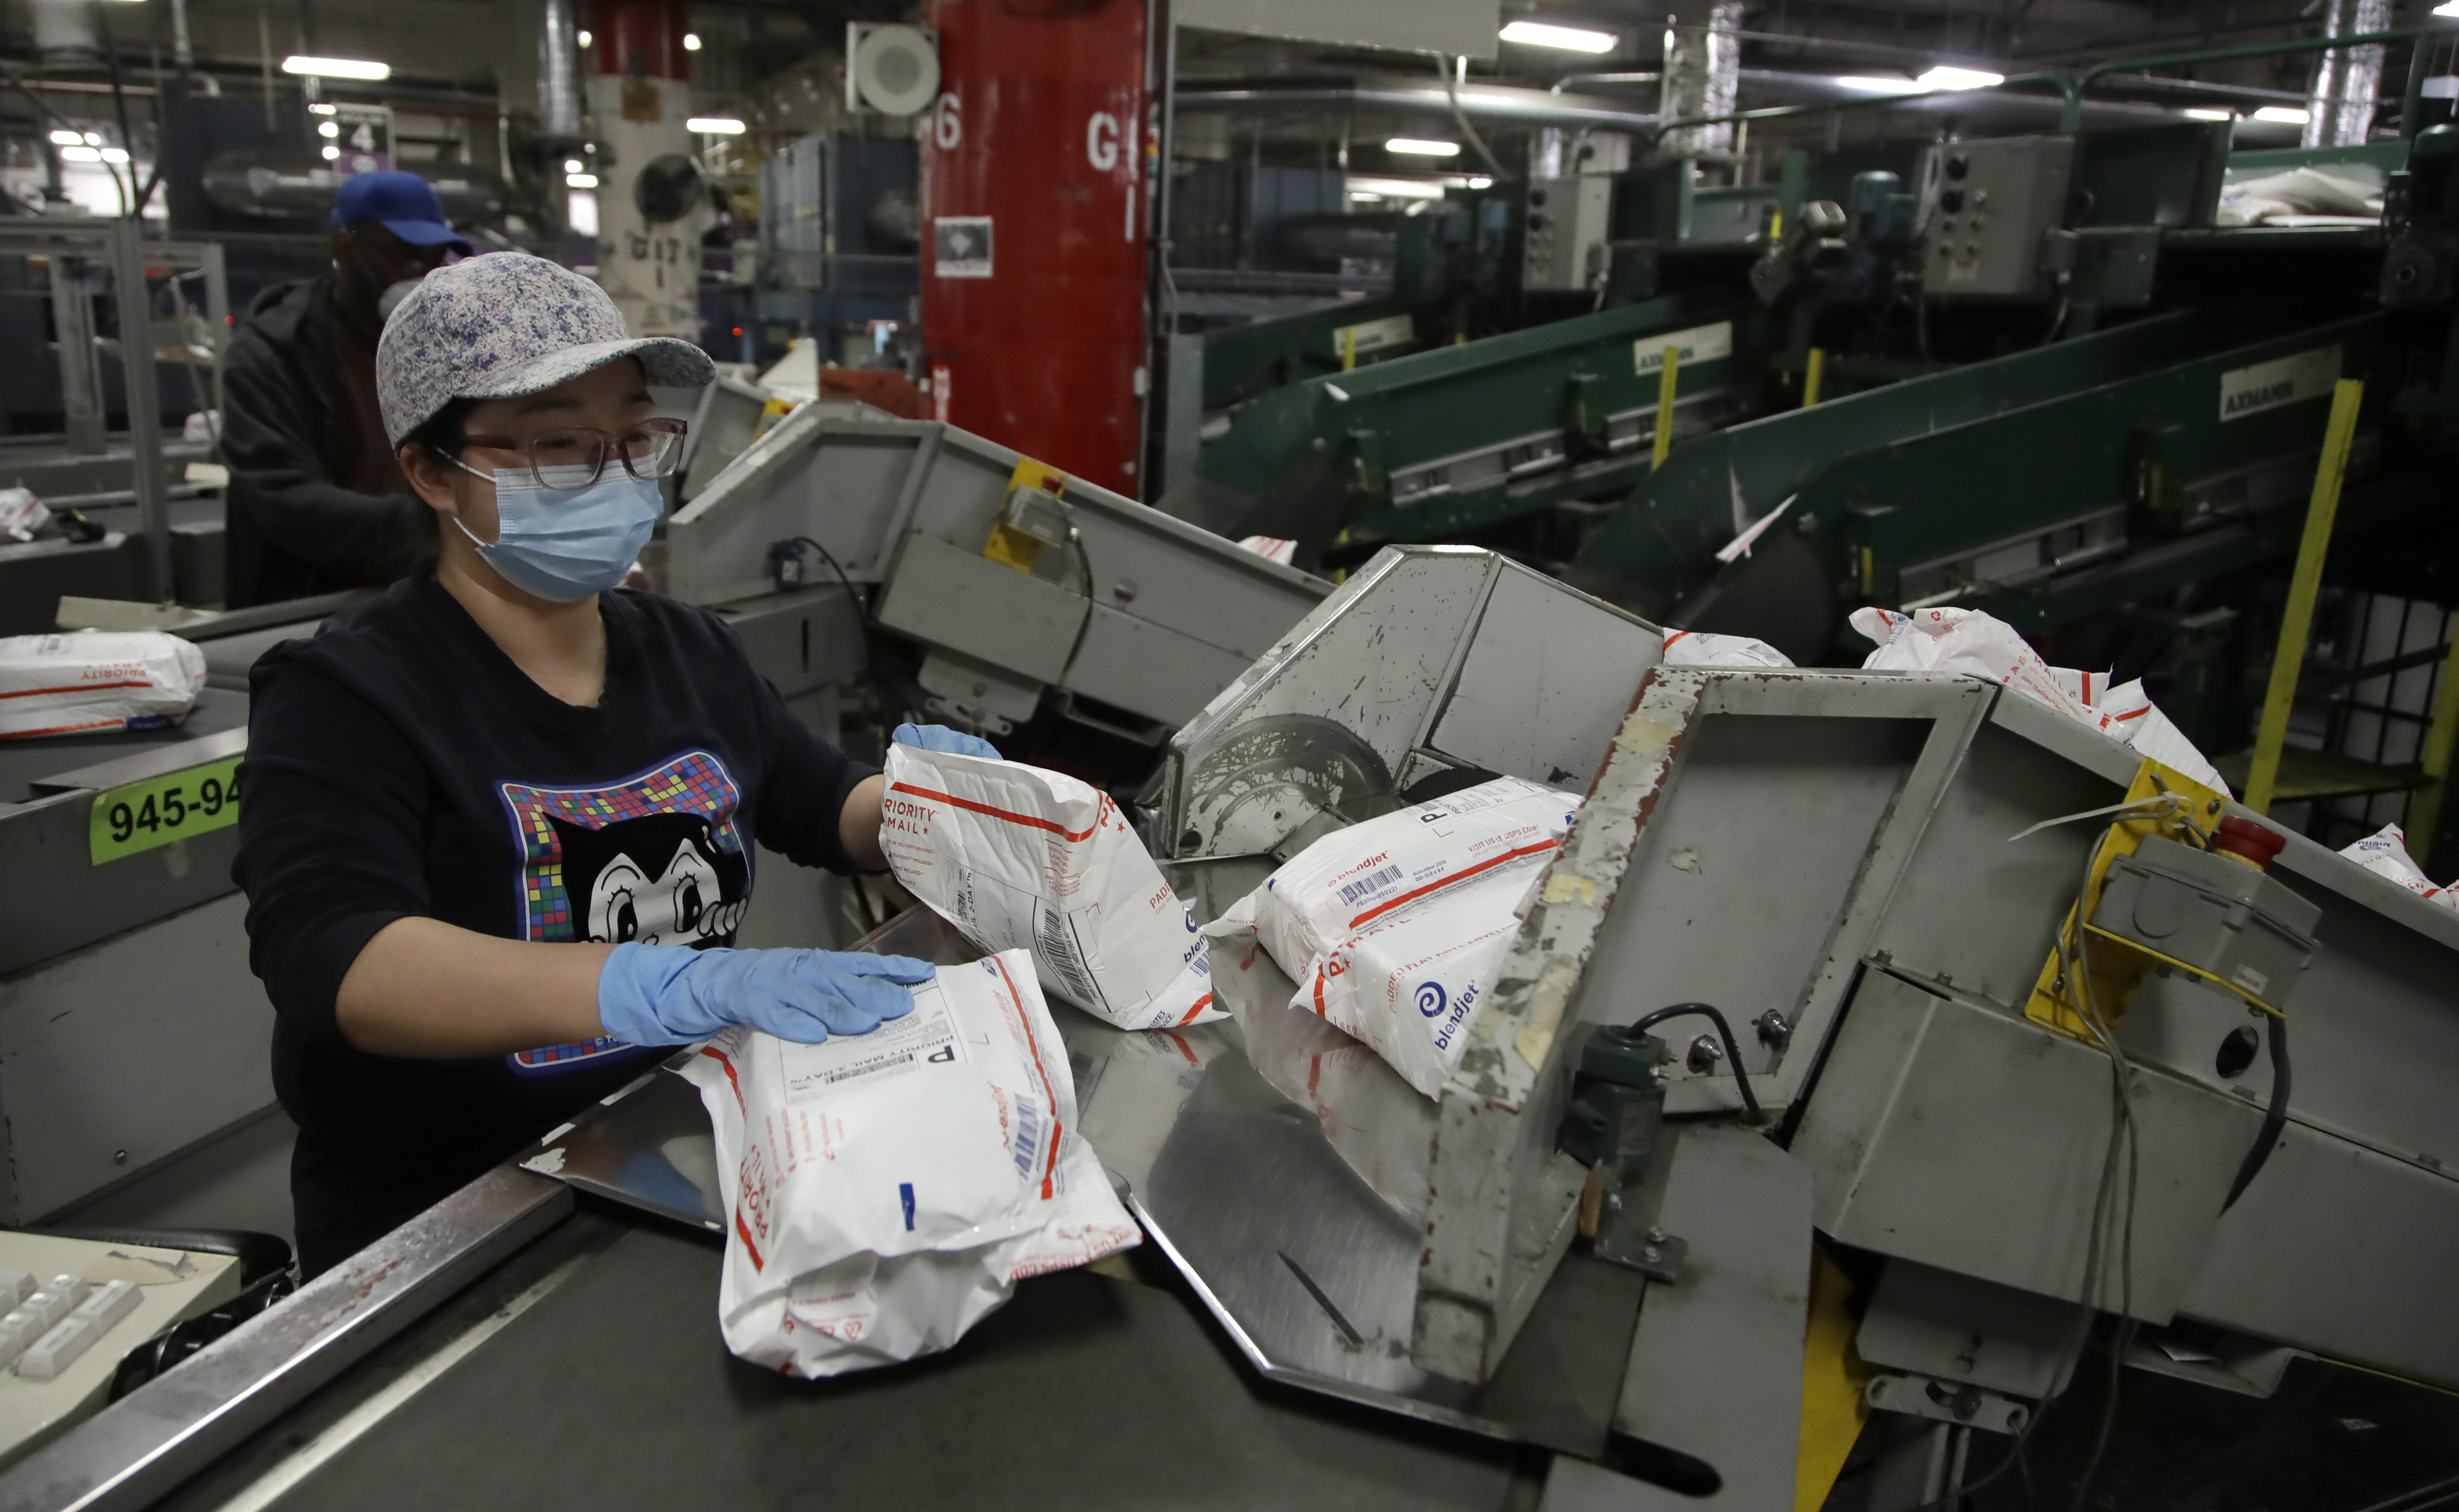 Postal Workers fight DeJoy plan to close processing centers and eliminate jobs